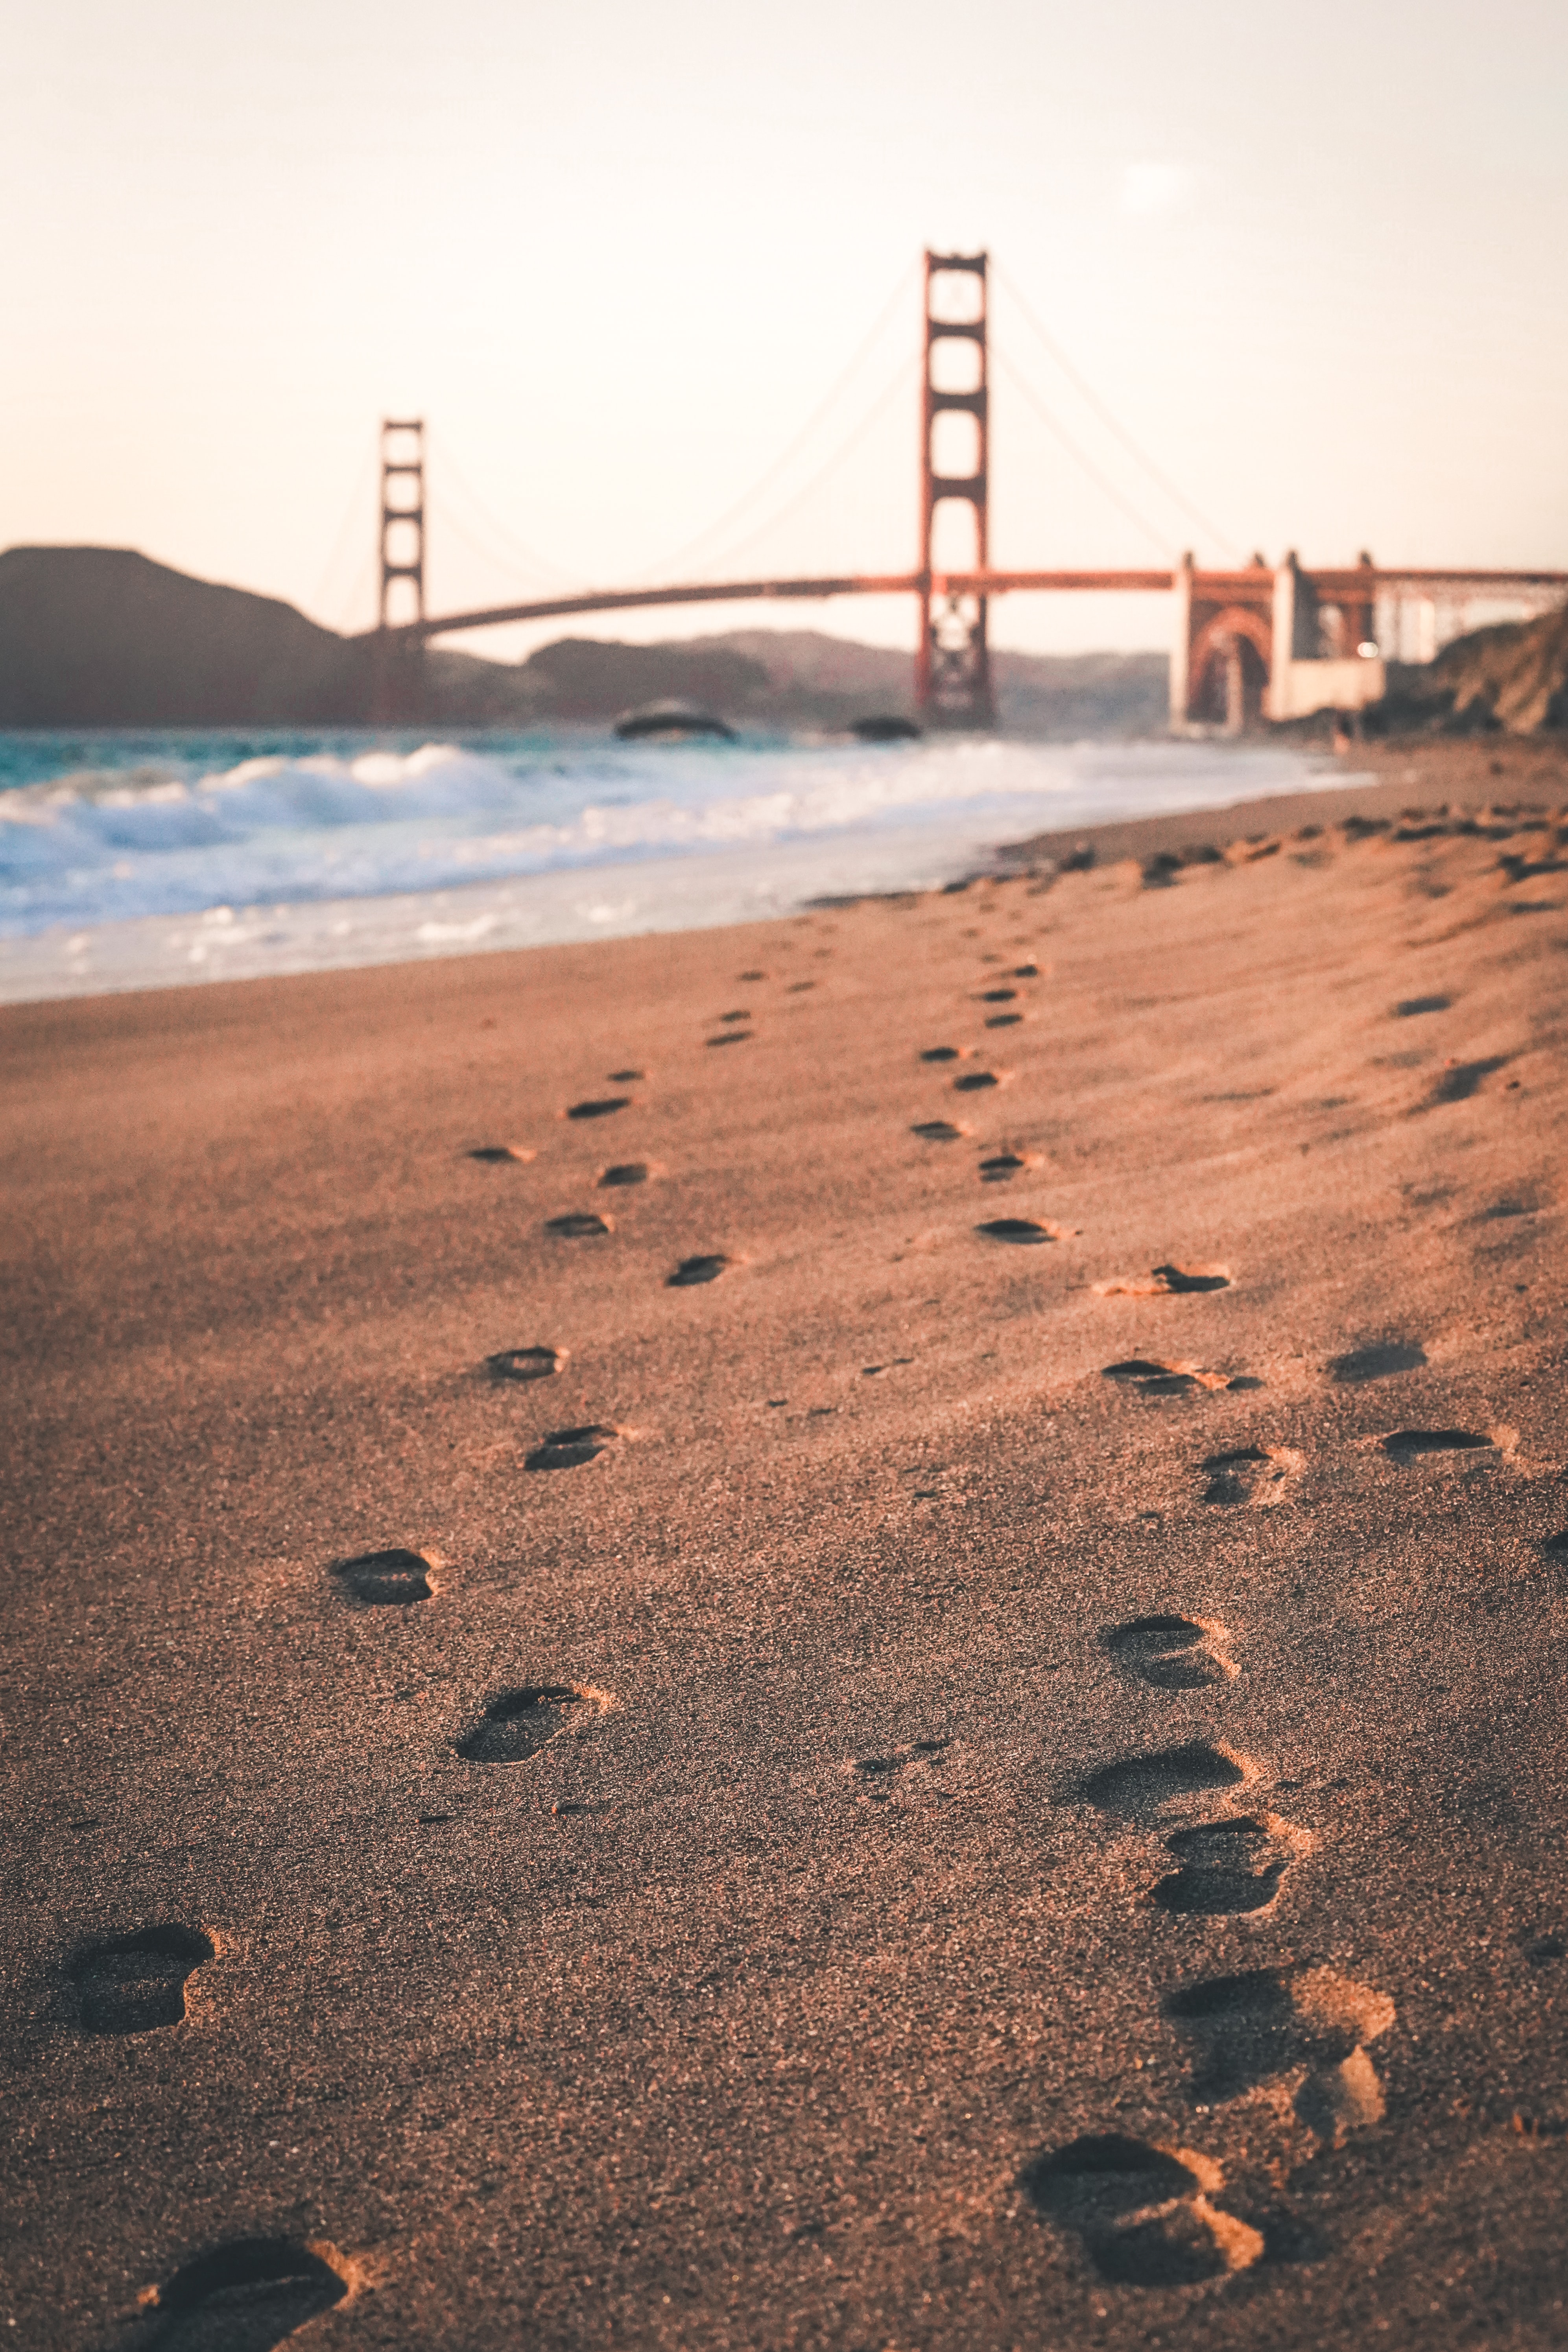 Footprints in the sand with the Golden Gate bridge in the background in San Francisco